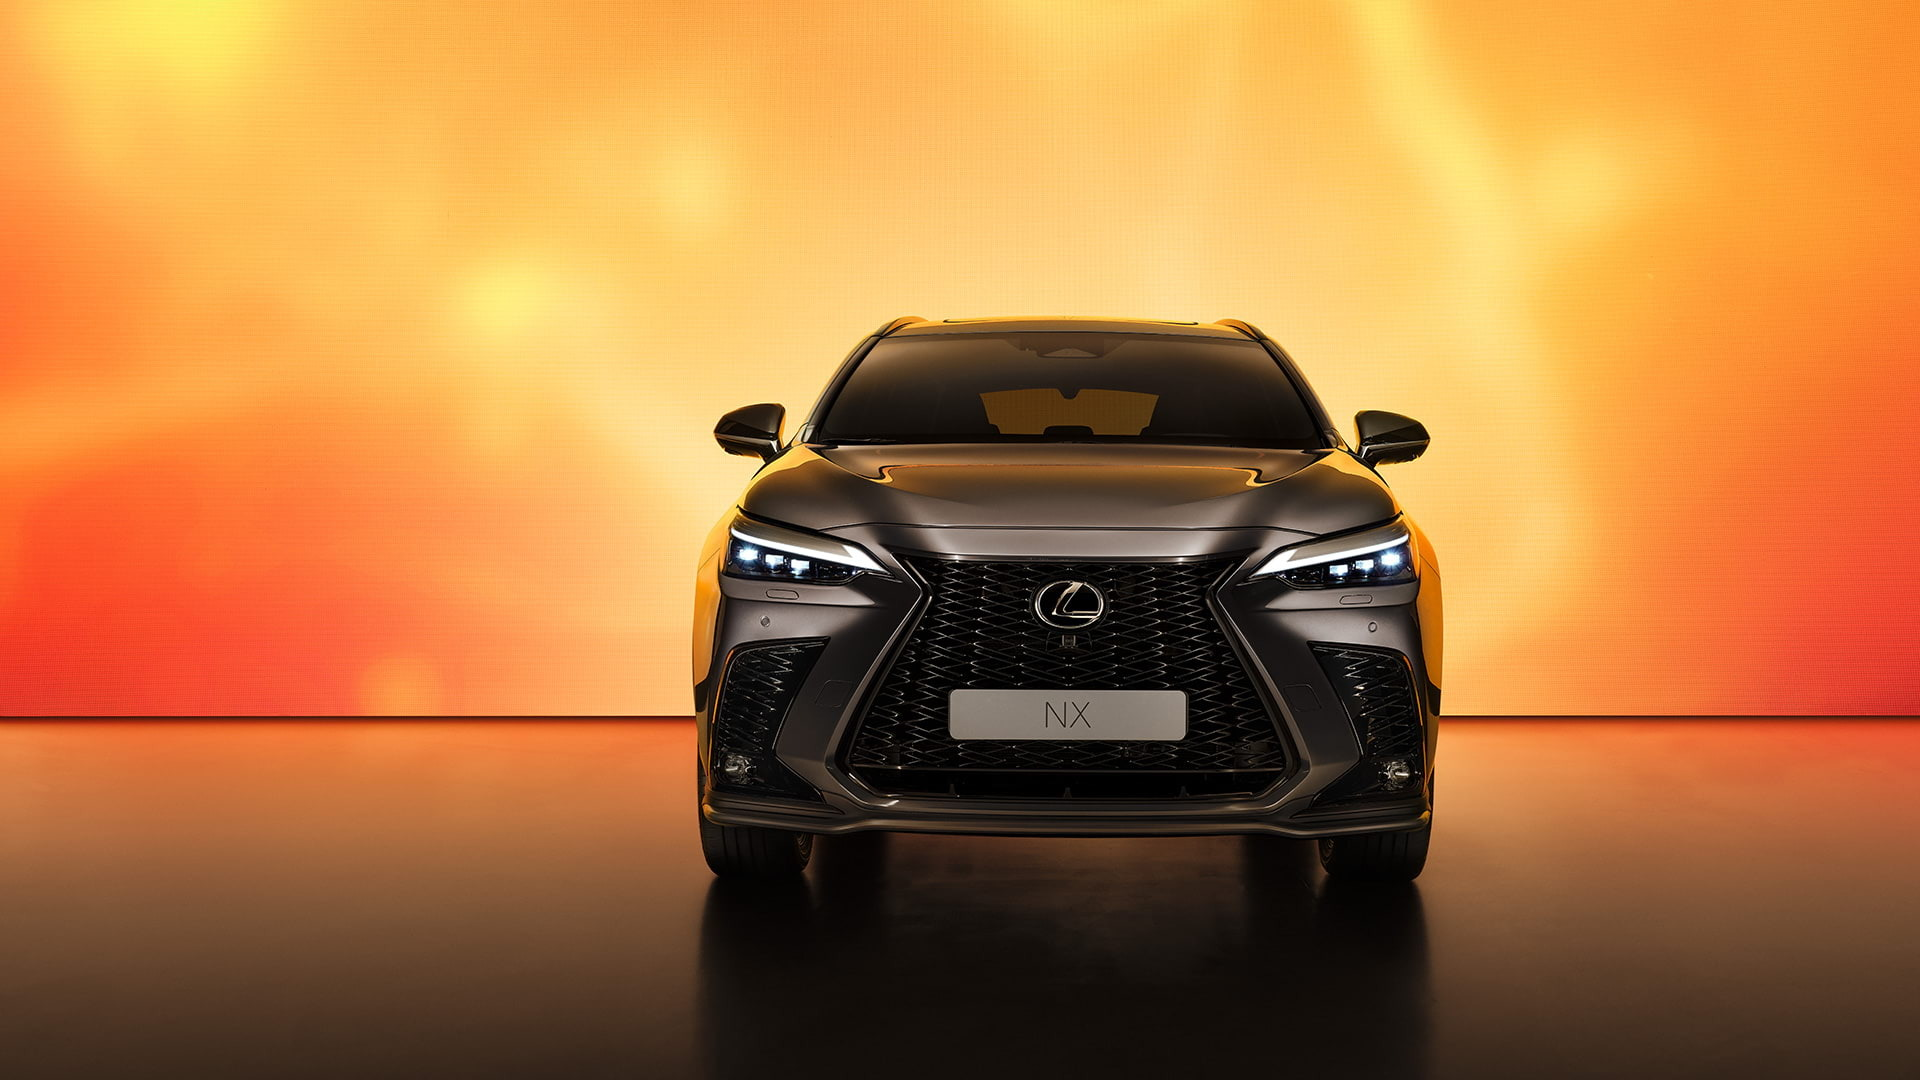 Lexus NG NX Pre order banner 1920x1080 hero picture